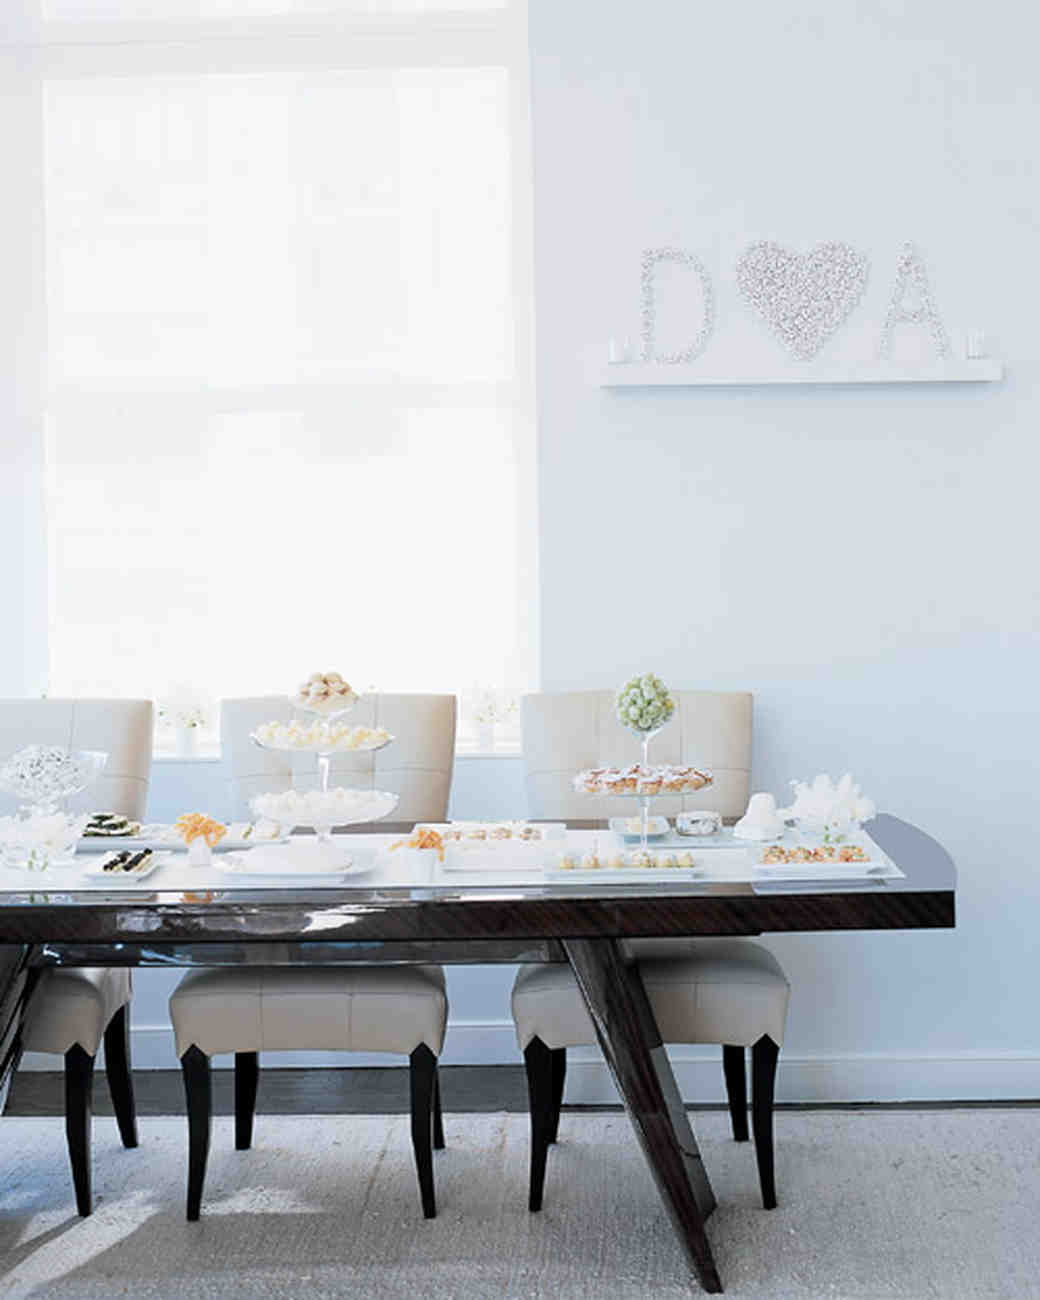 37 Bridal Shower Themes That Are Truly One-of-a-Kind | Martha ...